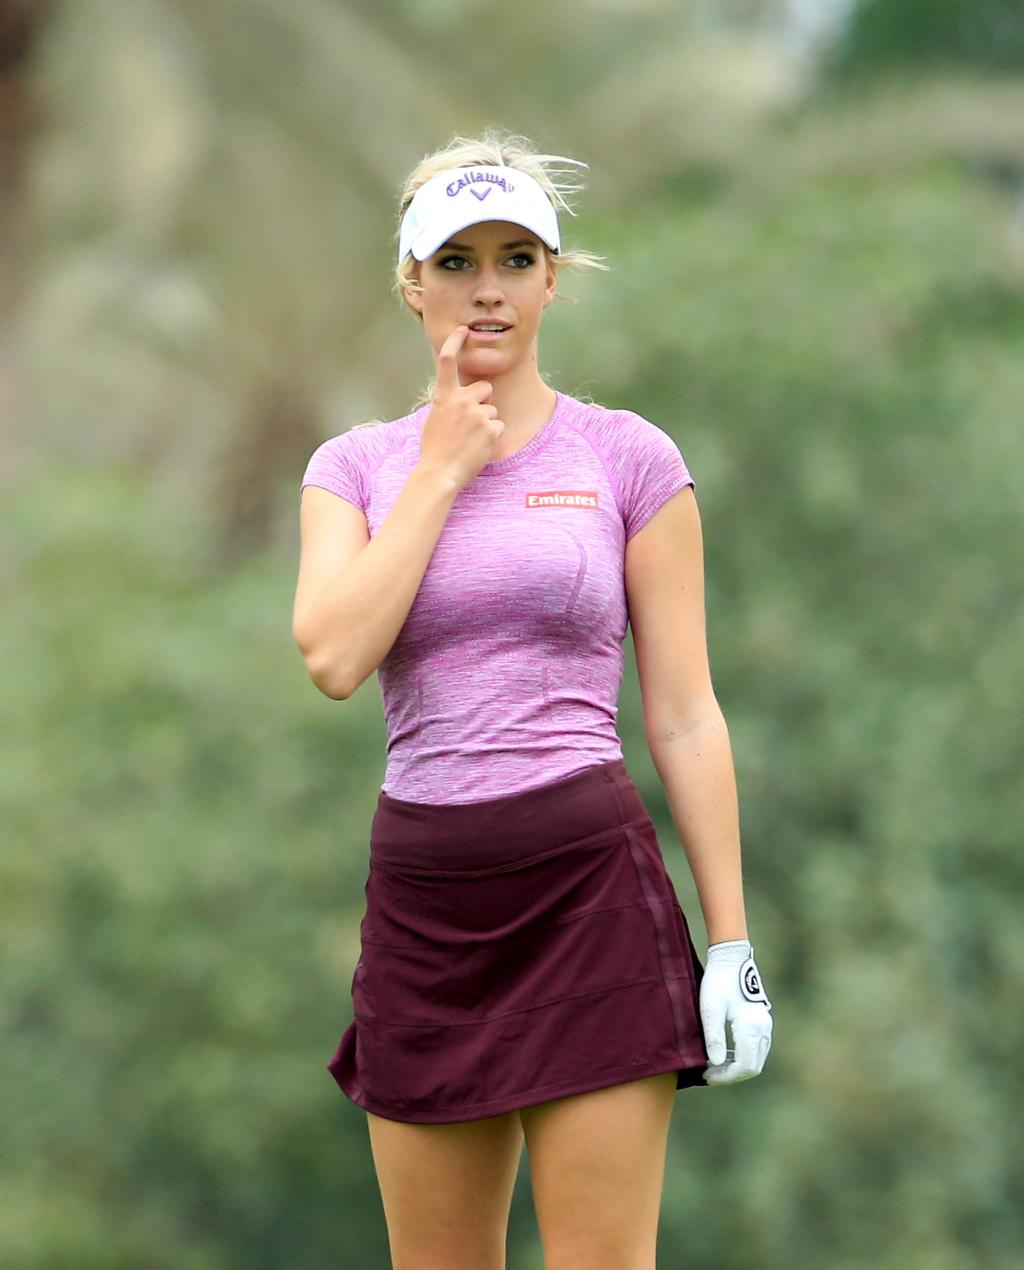 Paige Spiranac Makes Cut On Ladies European Tour - Golf Digest